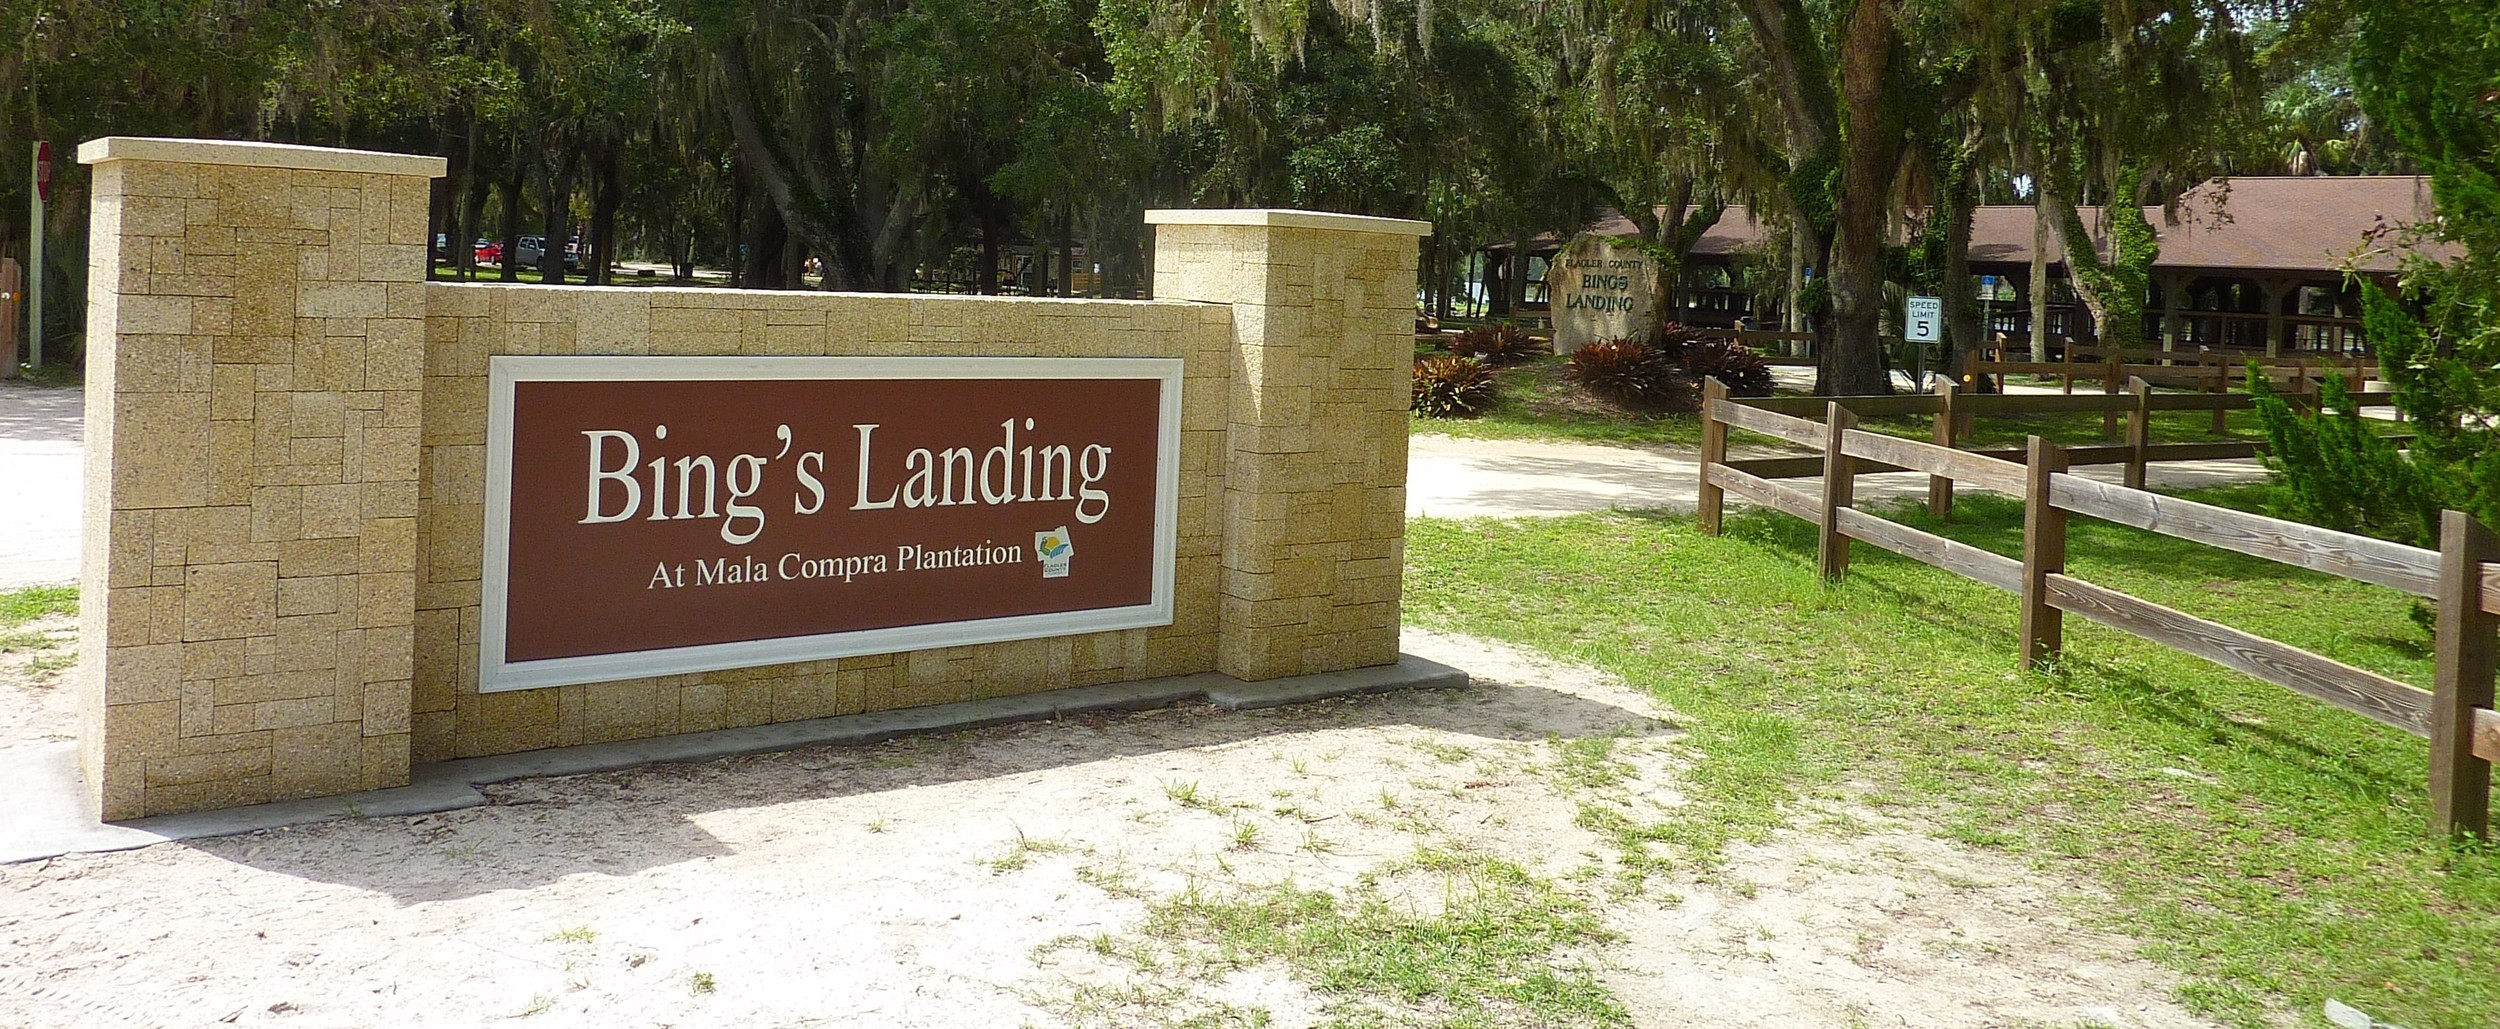 Visit the Flaglercounty.org website to learn more about Bing's Landing.